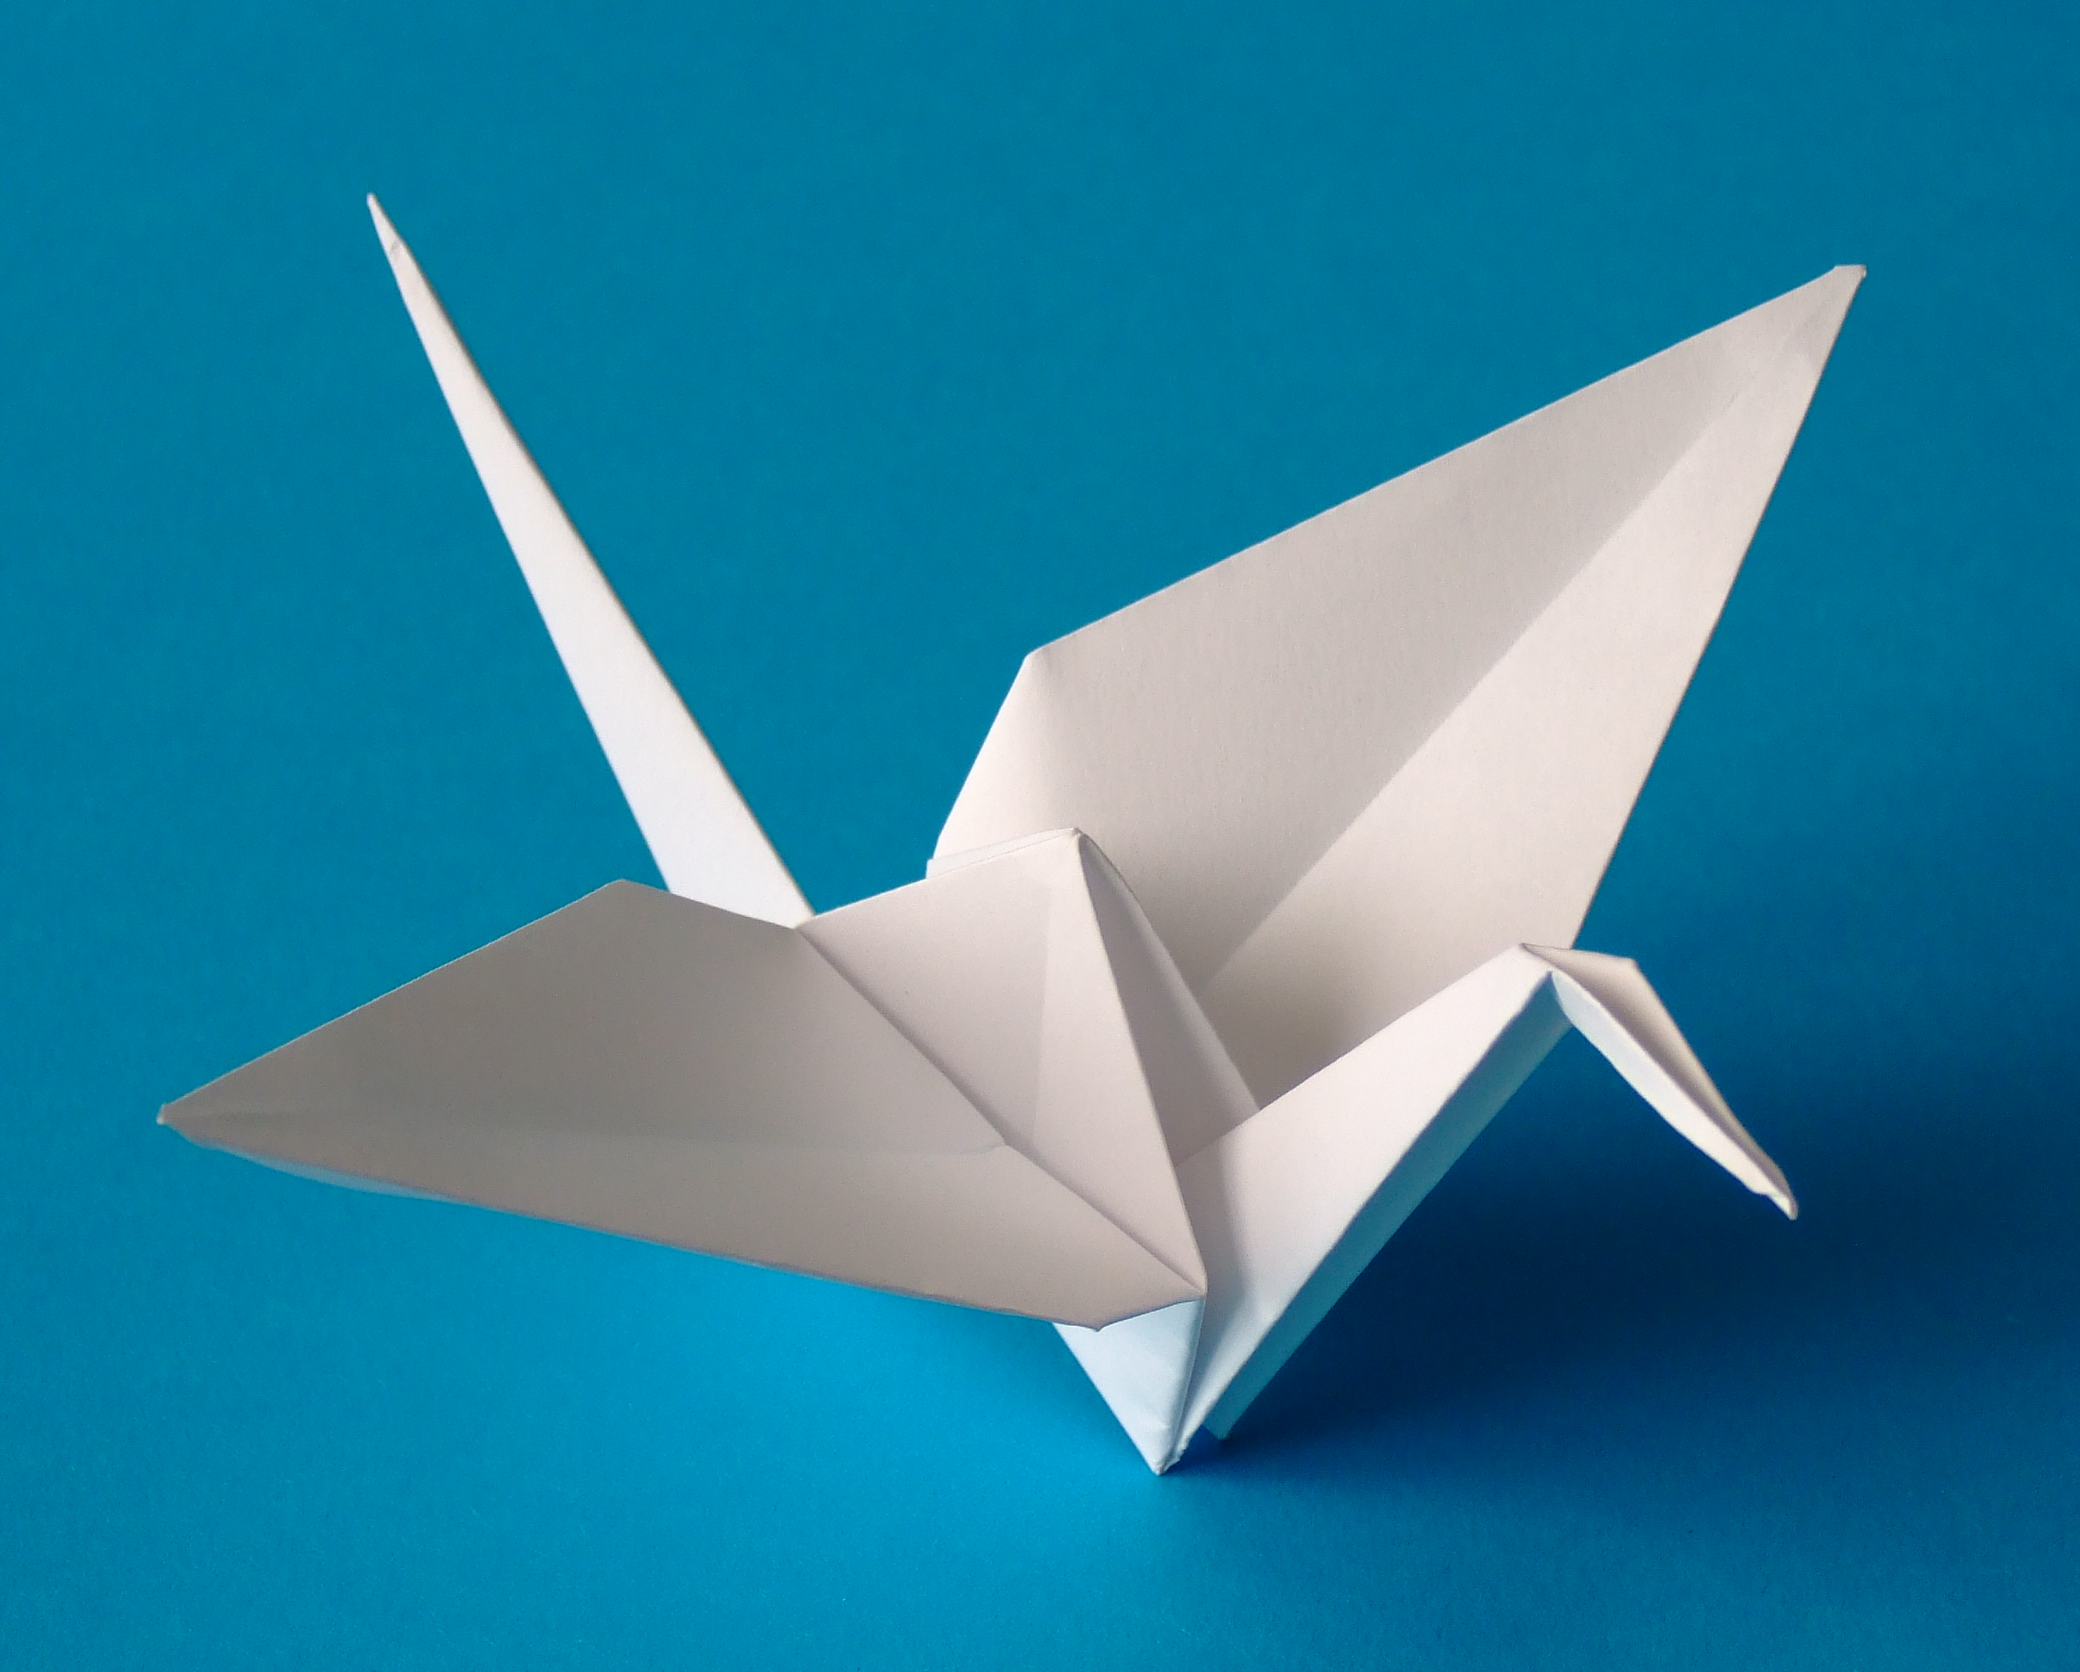 http://upload.wikimedia.org/wikipedia/commons/f/fd/Origami-crane.jpg